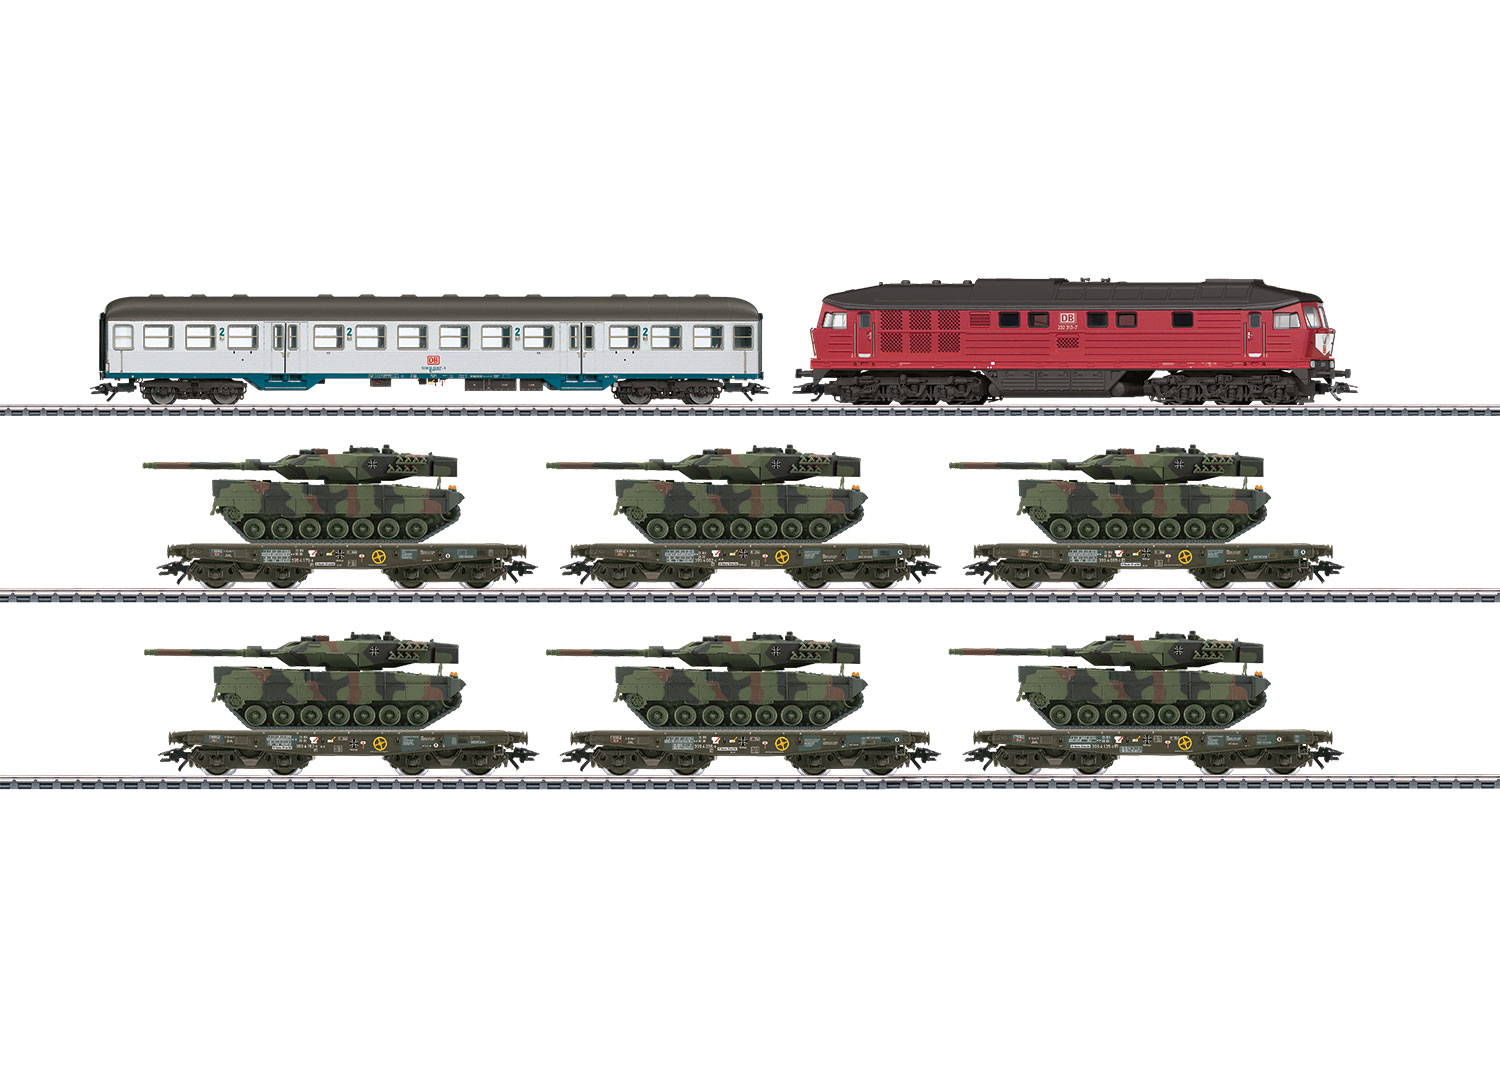 Freight Train with Military Freight for the German Federal Army